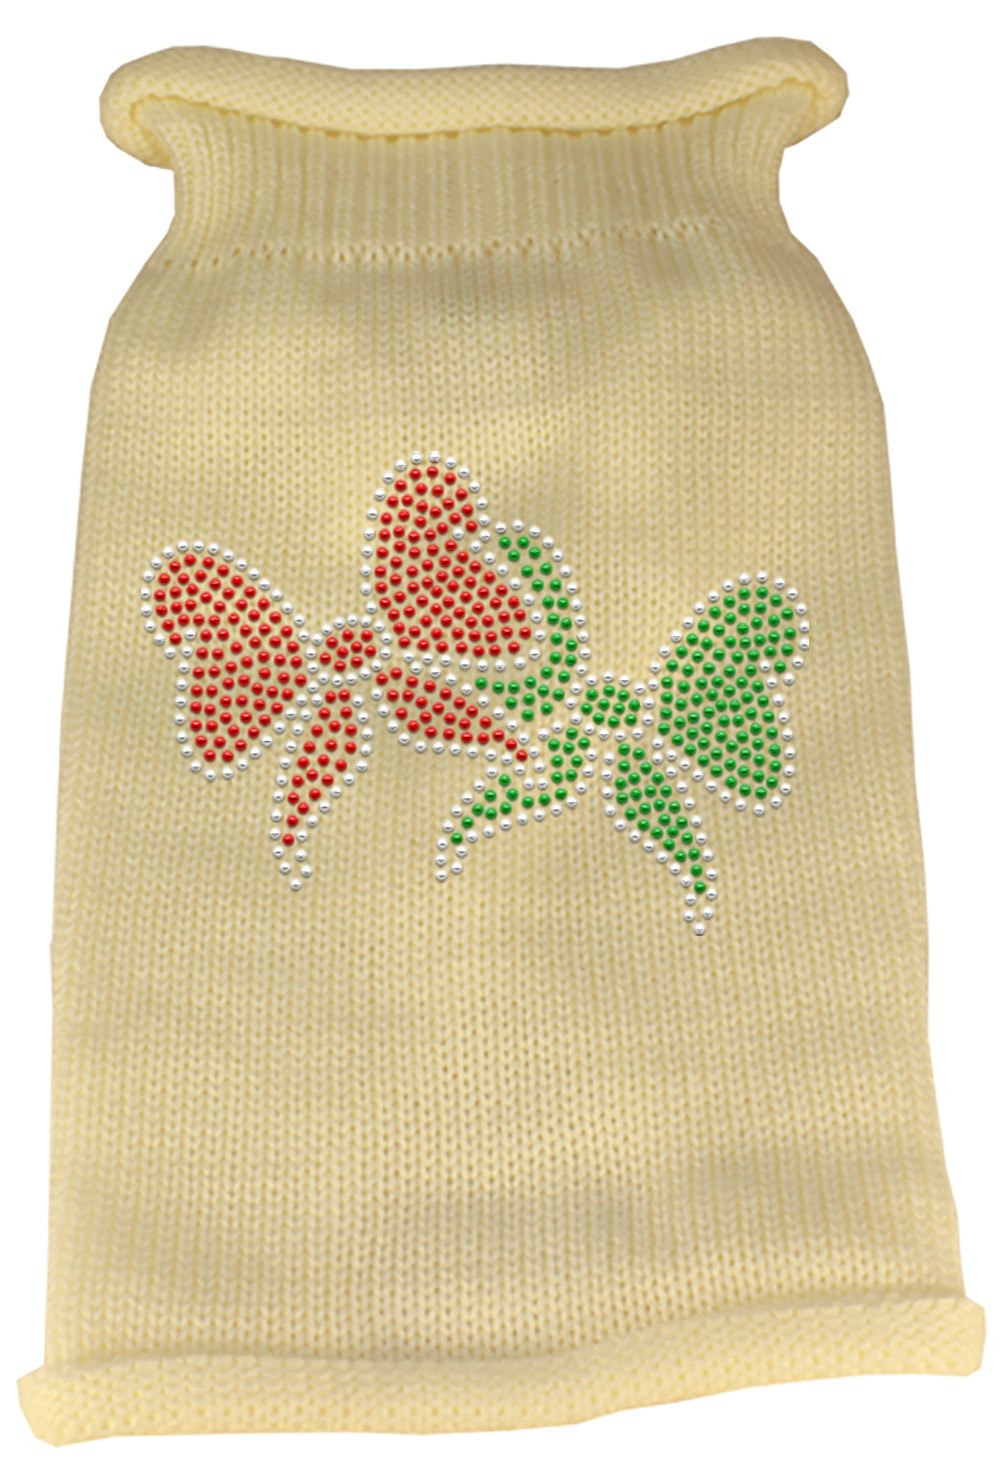 Mirage - Christmas Bows Pet Sweaters - Cream